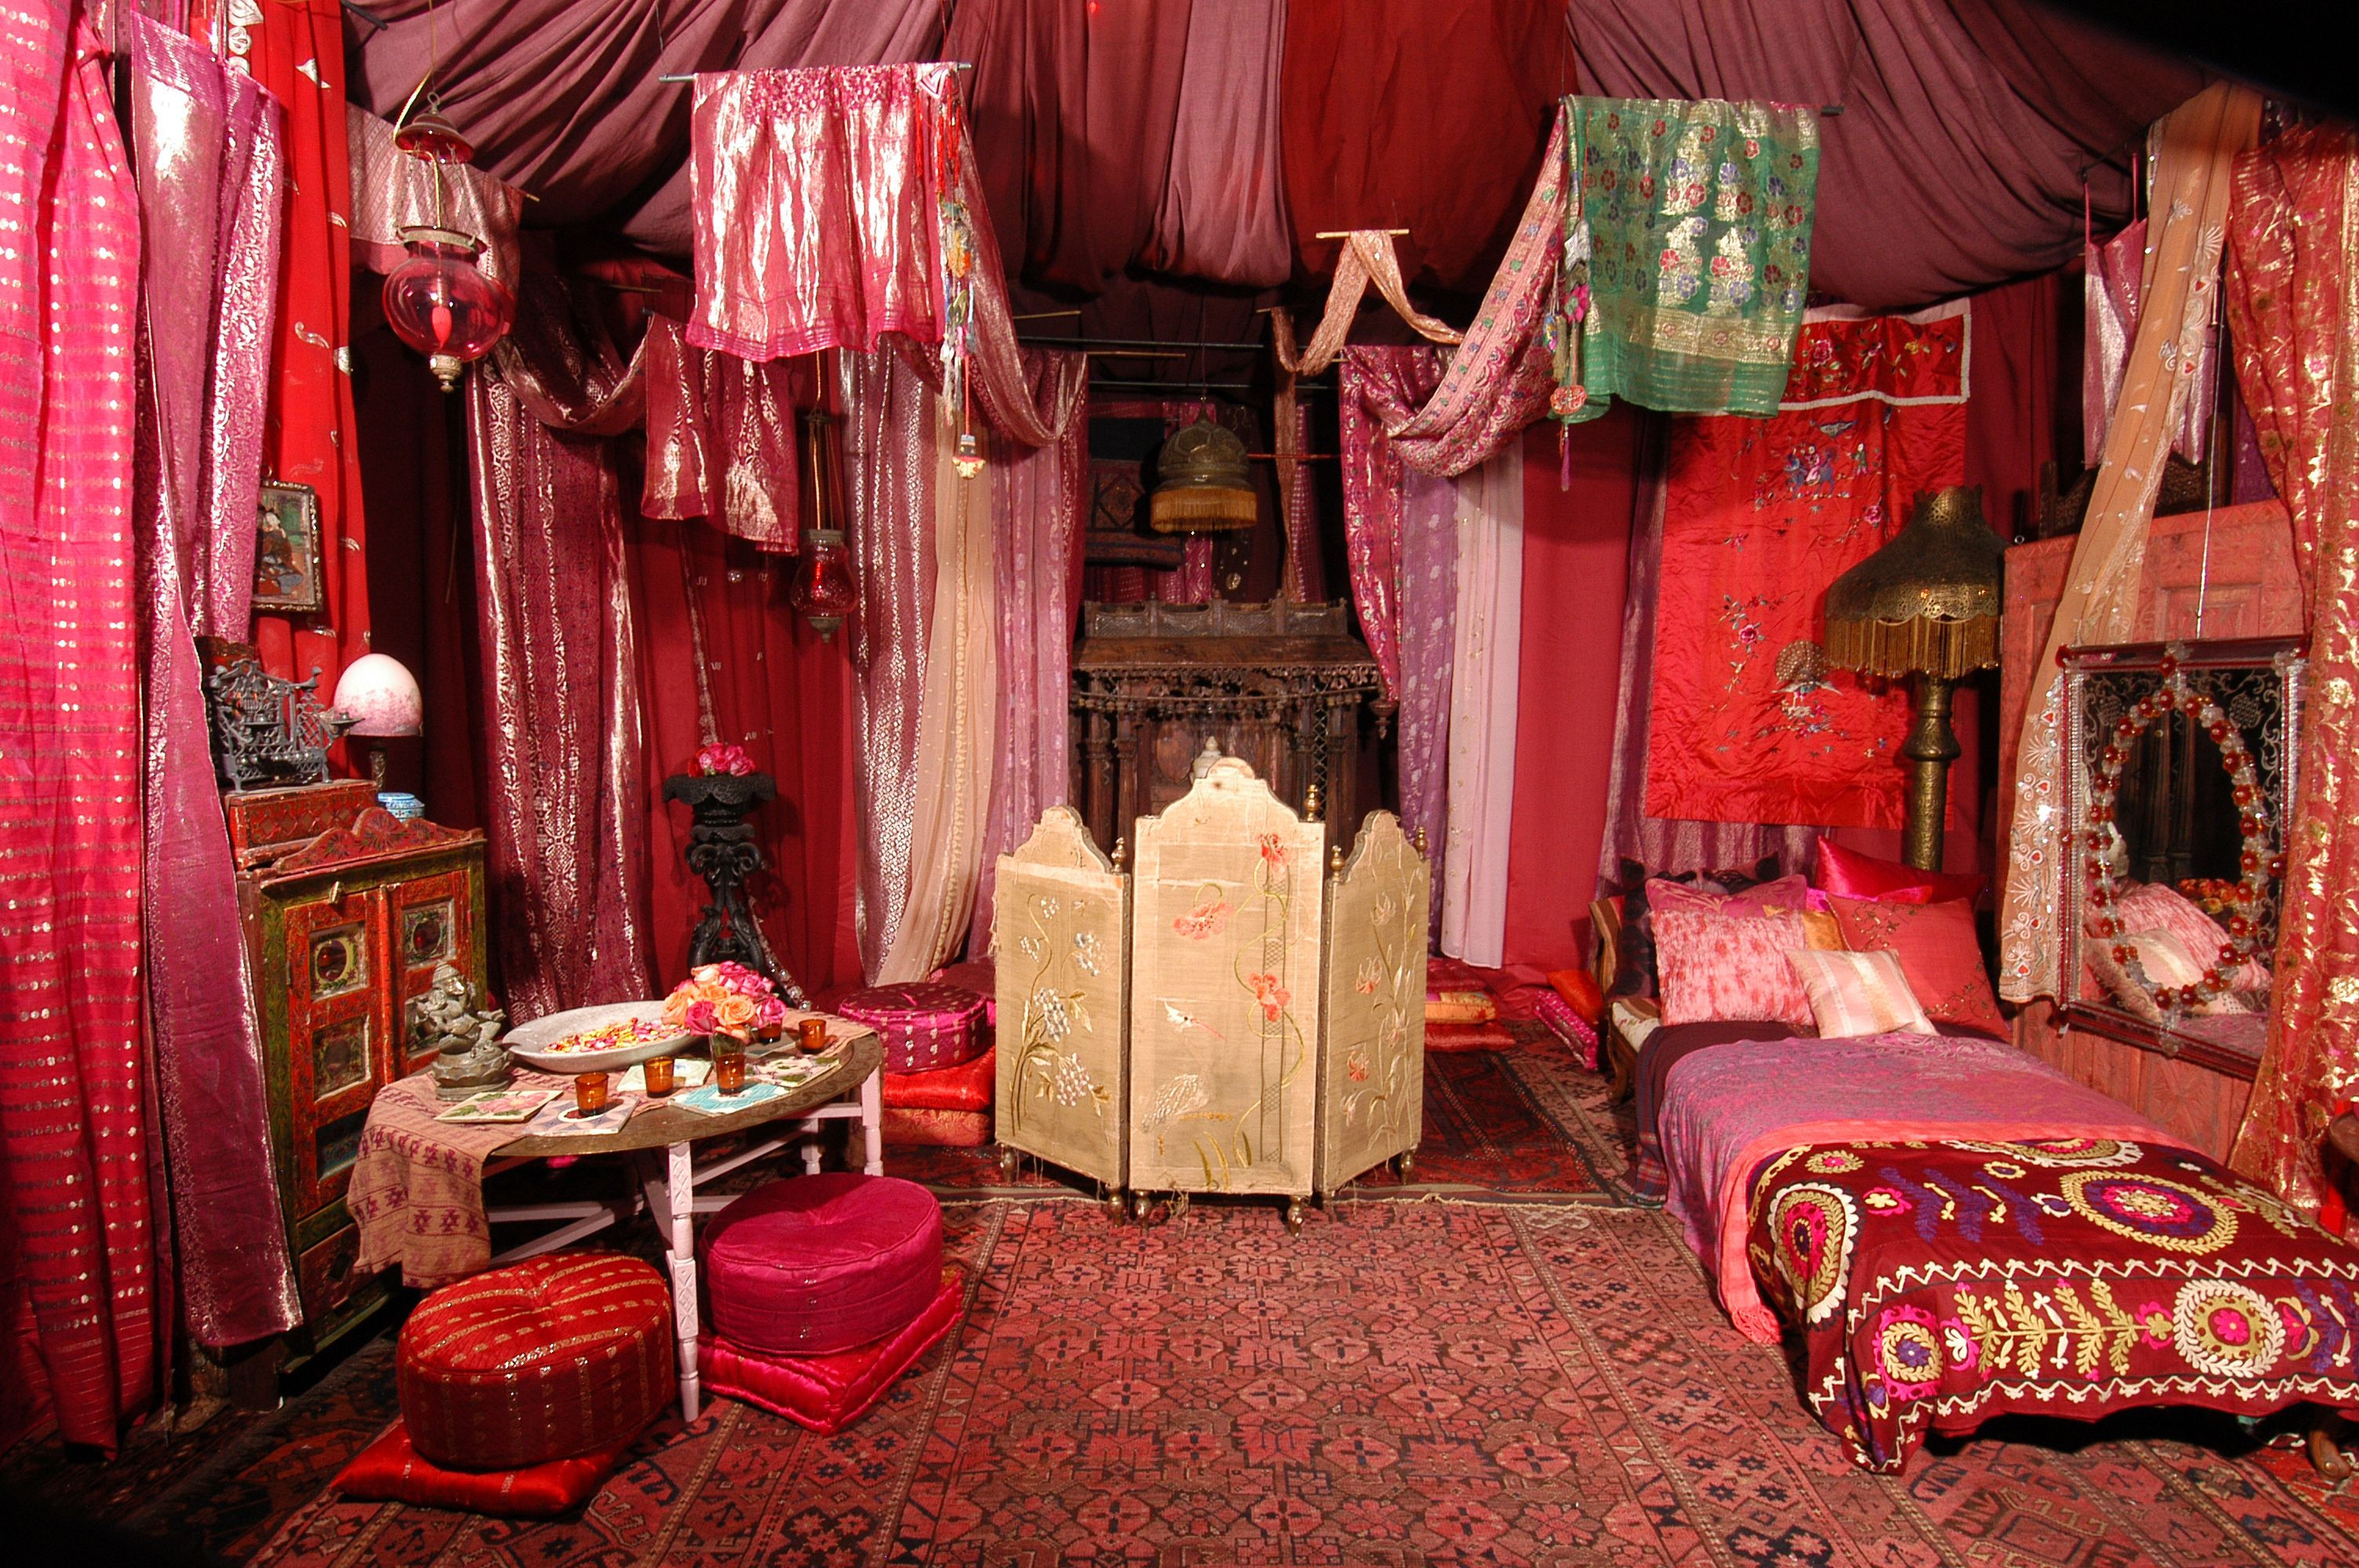 red tent - Google Search & red tent - Google Search | Boho Gypsy hippie... | Pinterest ...